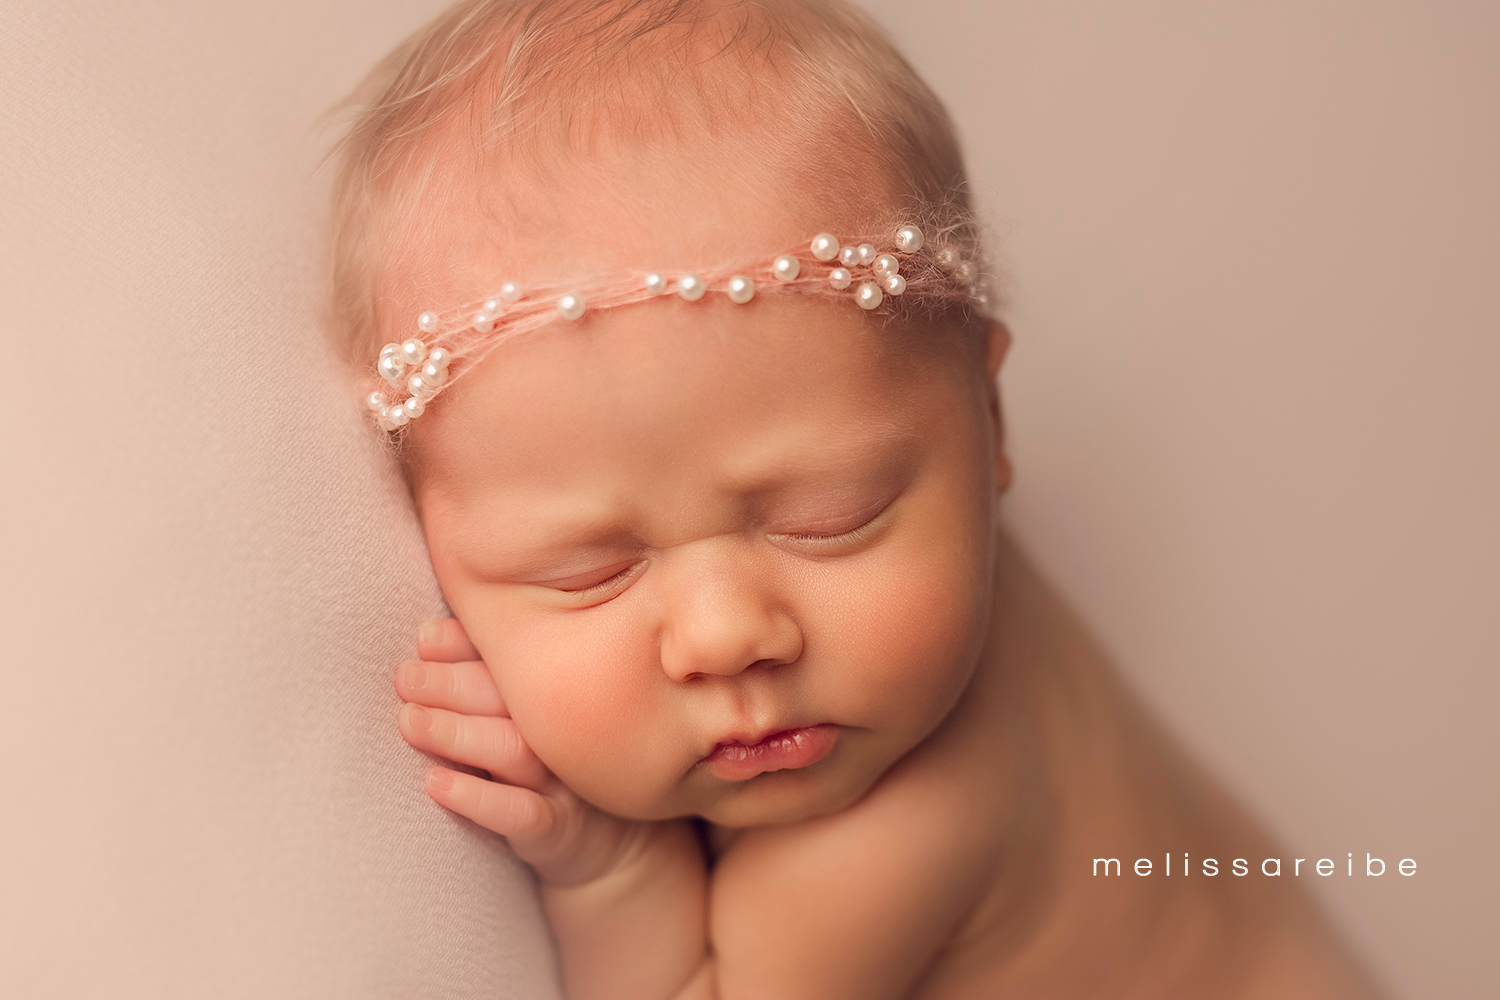 1222_Arkansas Newborn Photographer_Pearl Headband_Closeup Newborn